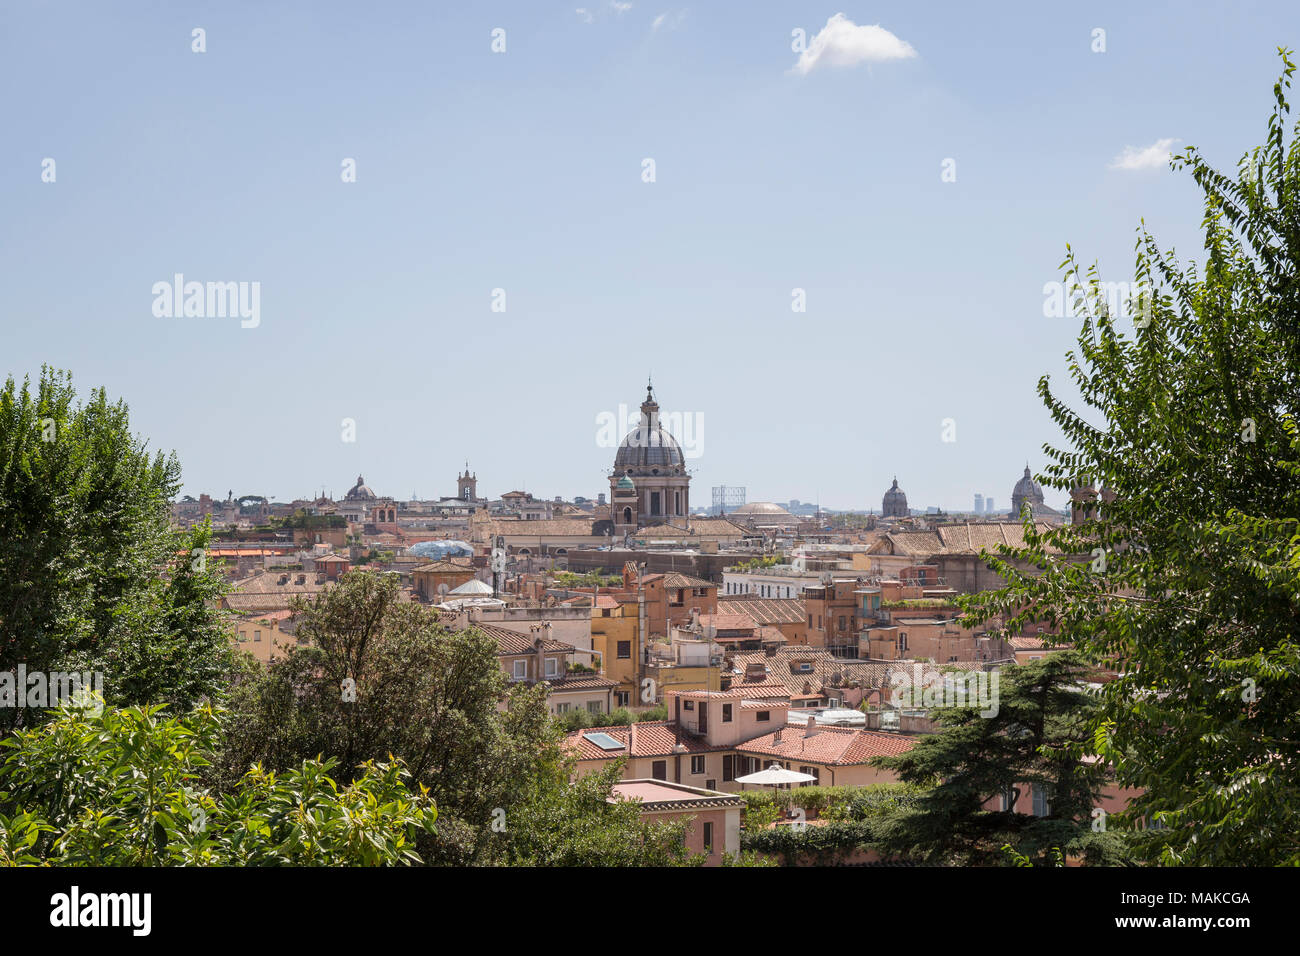 The Skyline Of Rome From Terrazza Del Pincio Looking Across